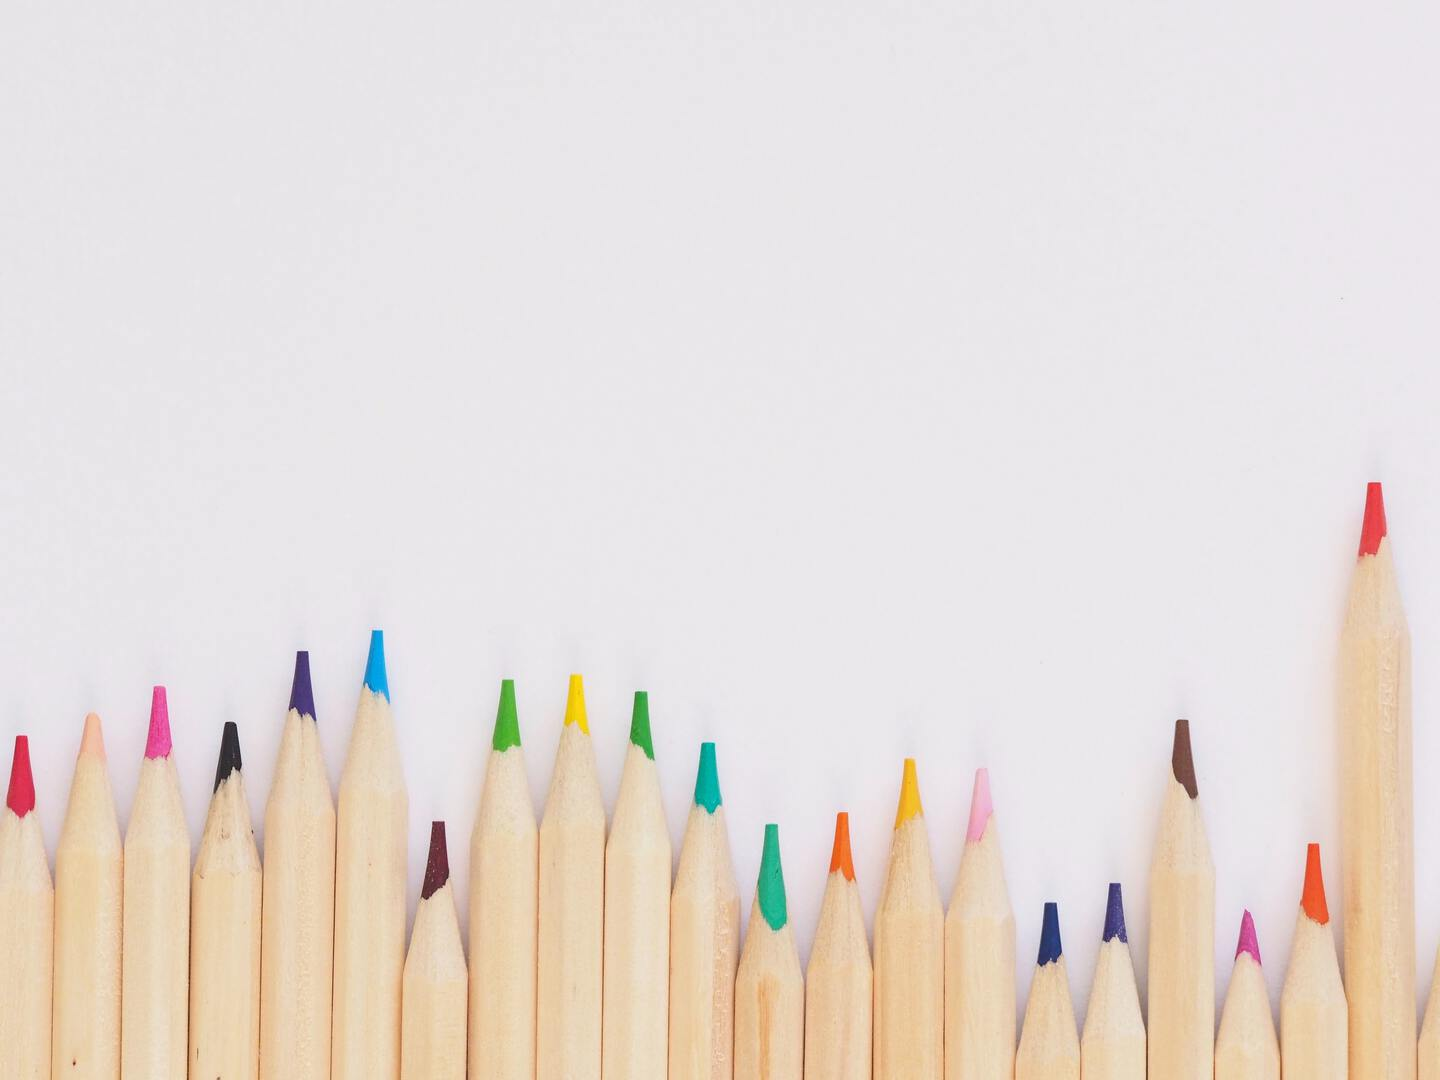 a full set of color pencils against a white background